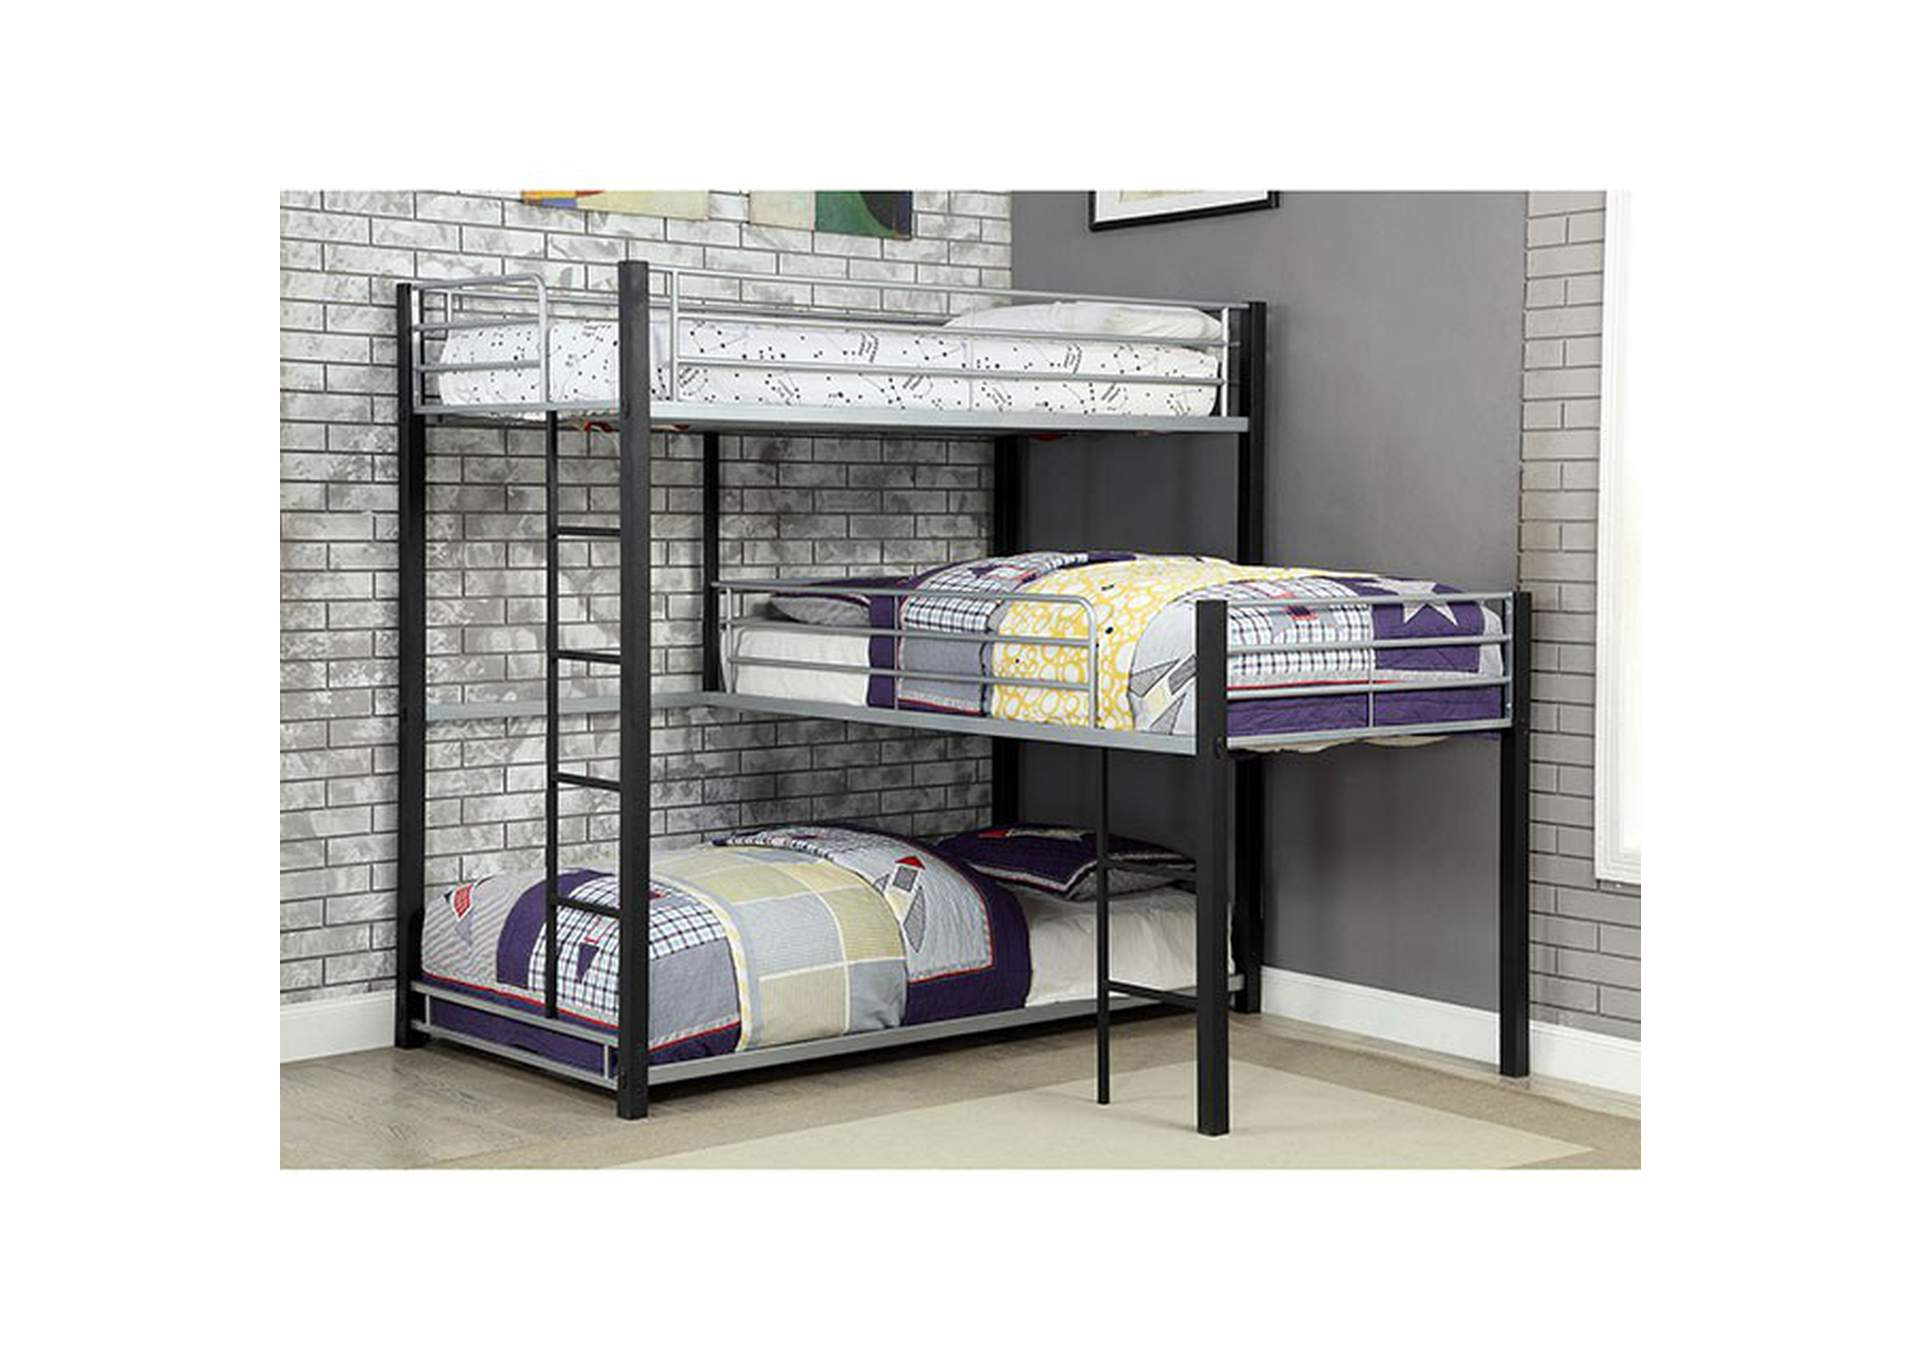 Aubrey Sand Black Twin Triple Decker Bunk Bed,Furniture of America